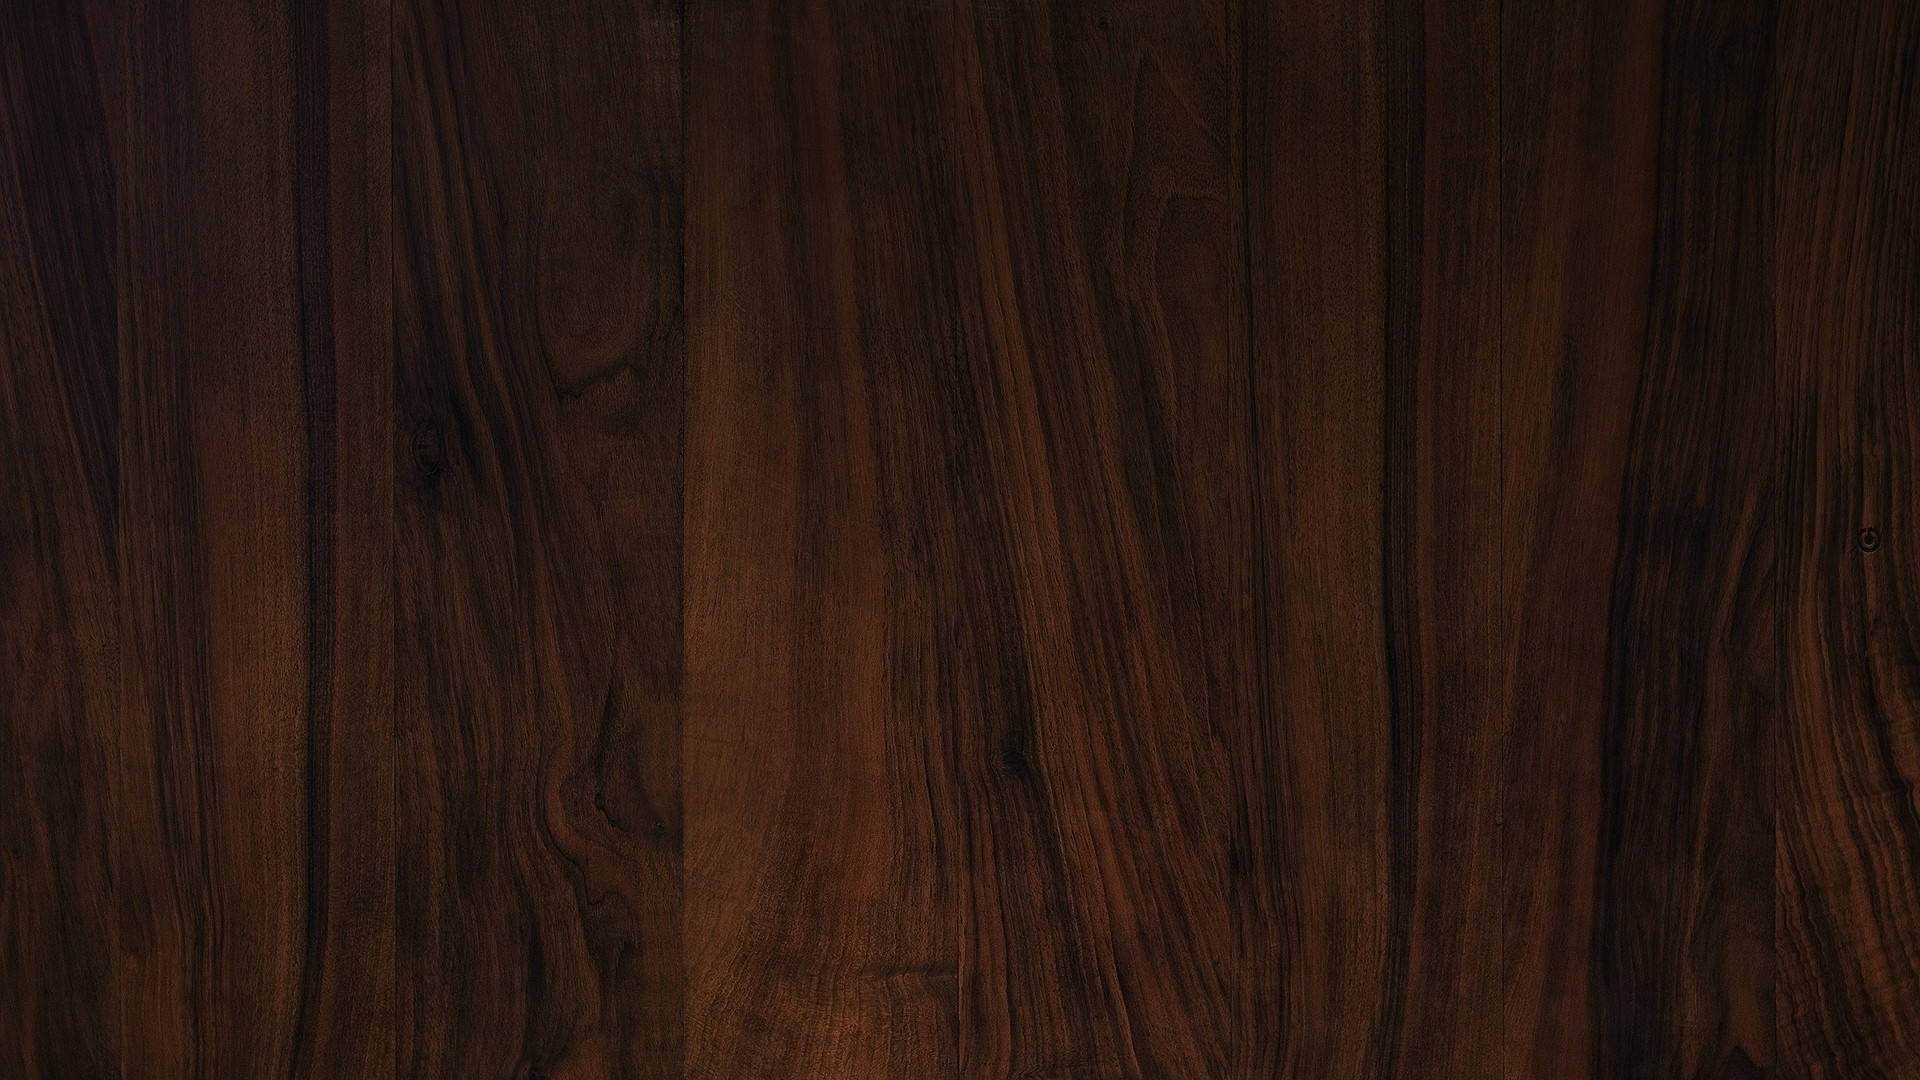 Wood Wall Paper wood wallpaper 10123 1920x1080 px ~ hdwallsource